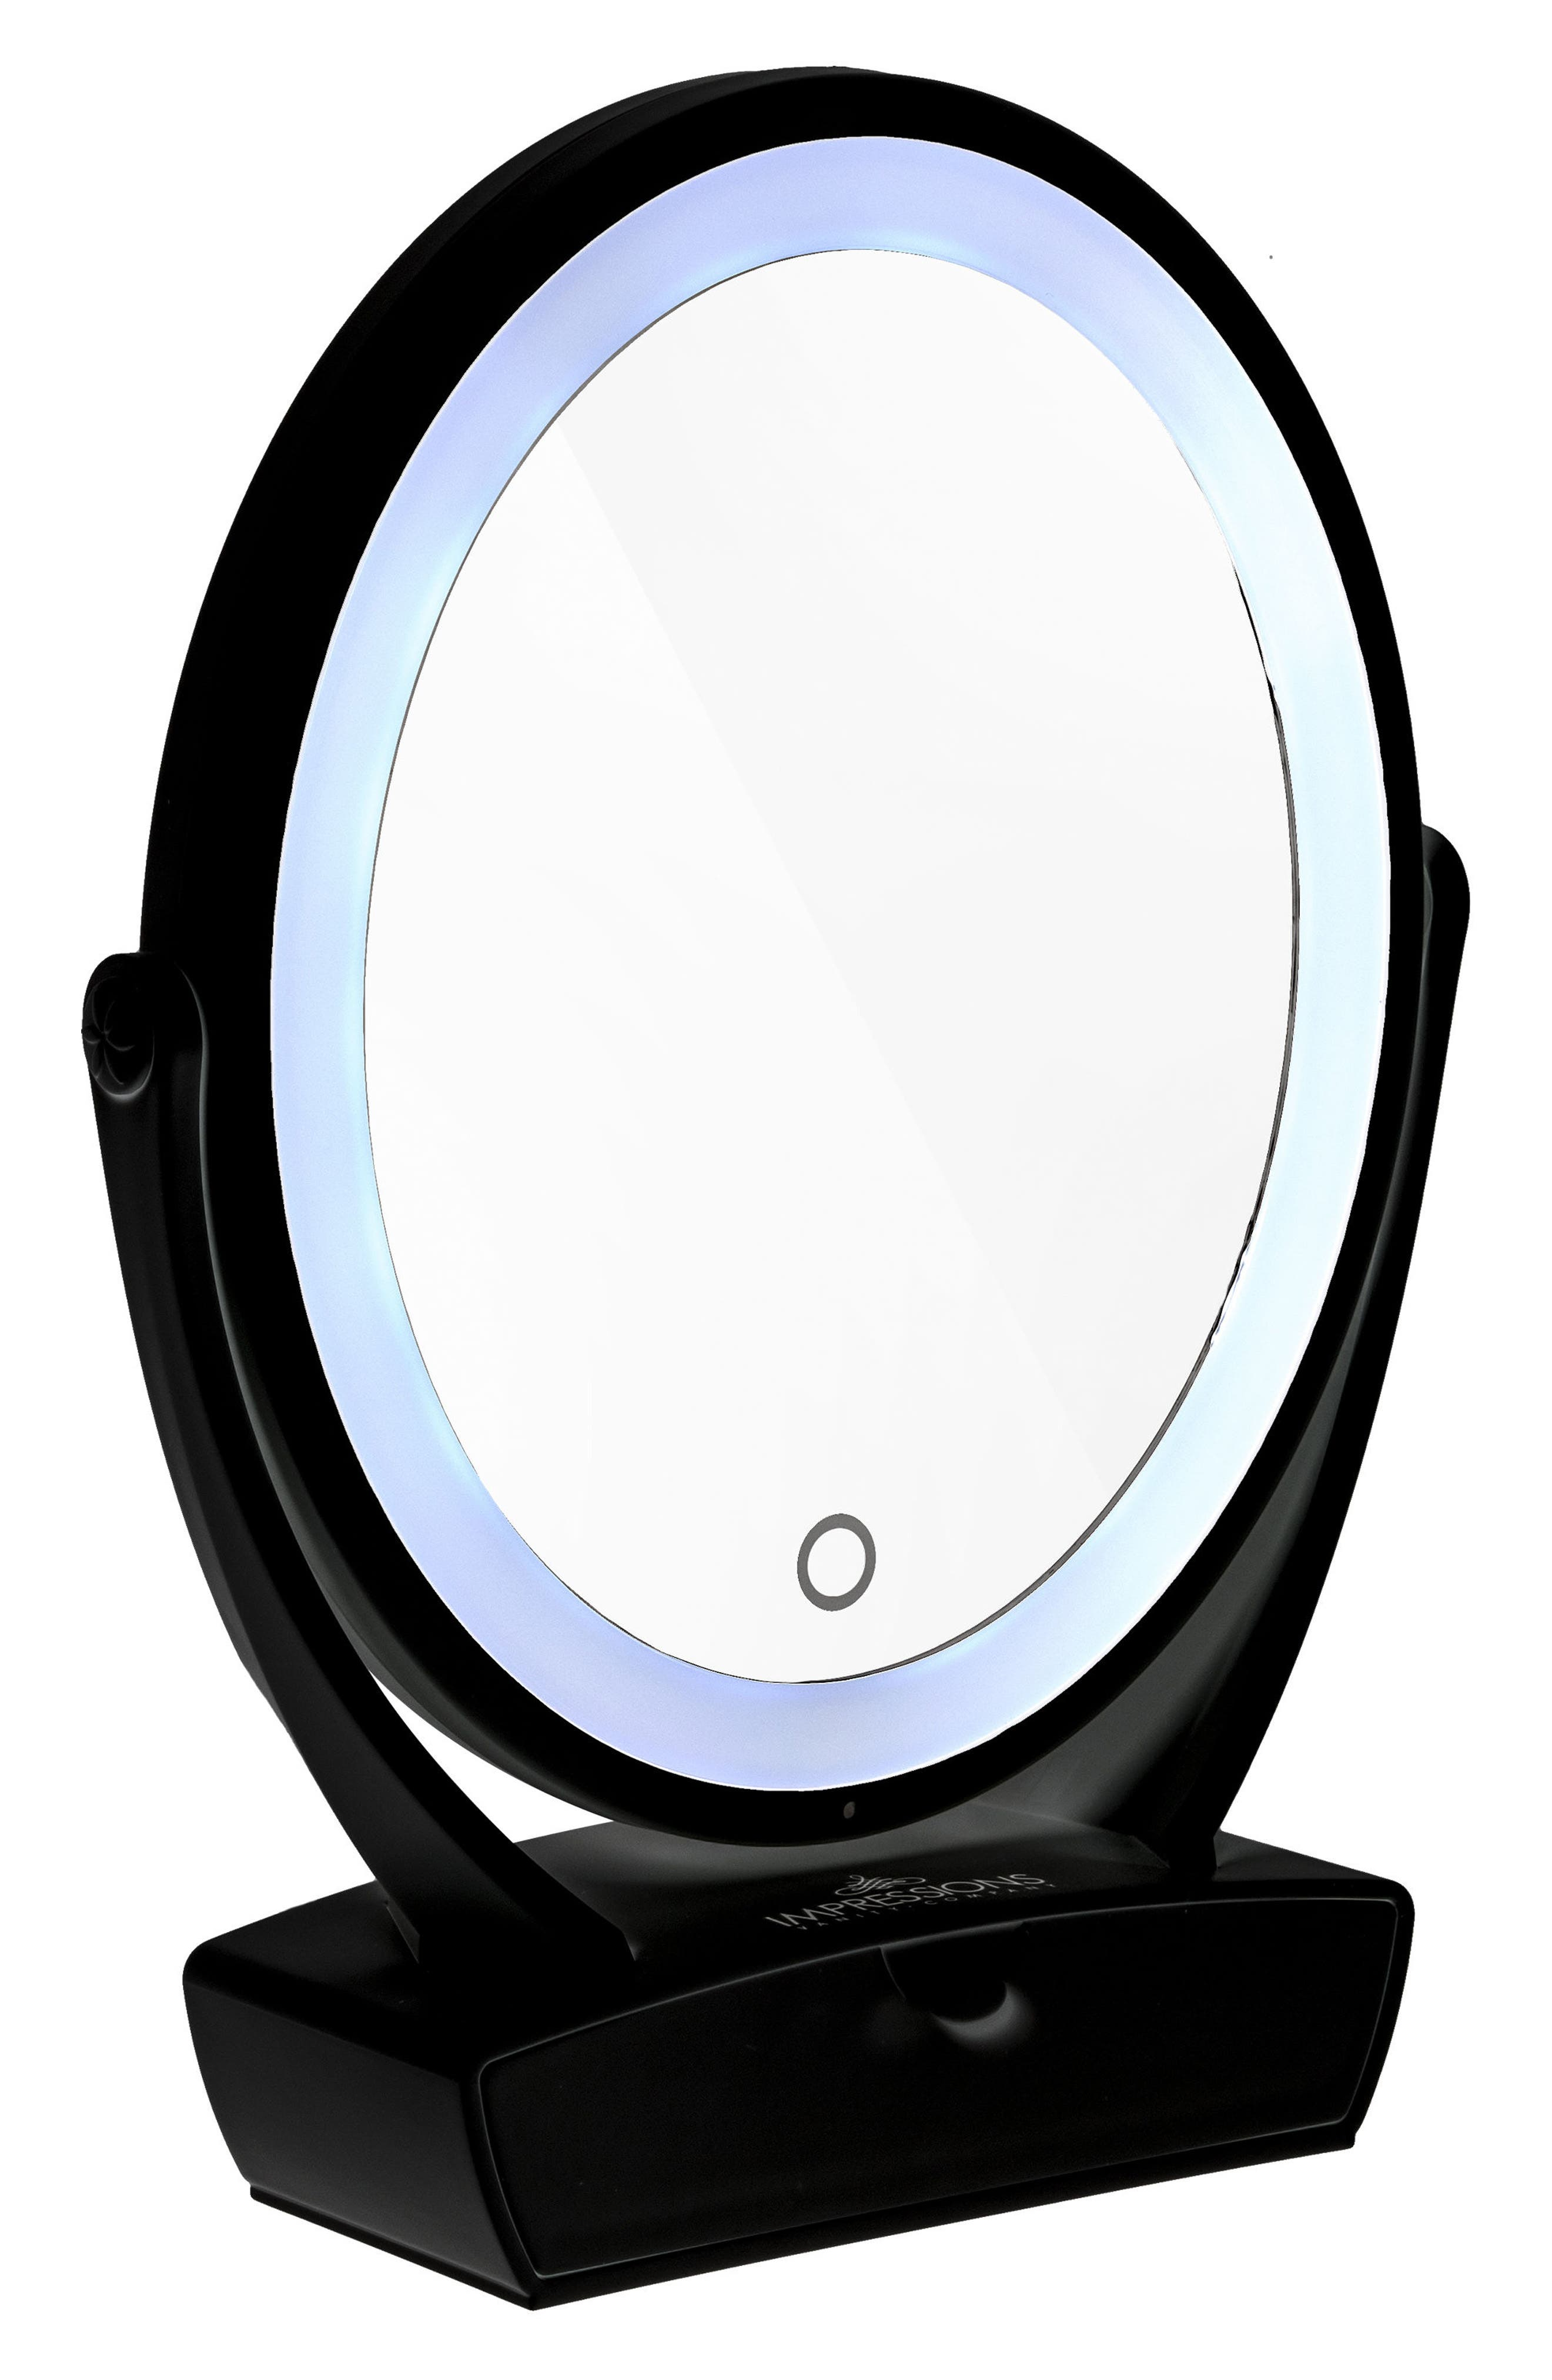 Alternate Image 1 Selected - Impressions Vanity Co. Touch Chill Rechargeable LED Dual Mirror with Drawer